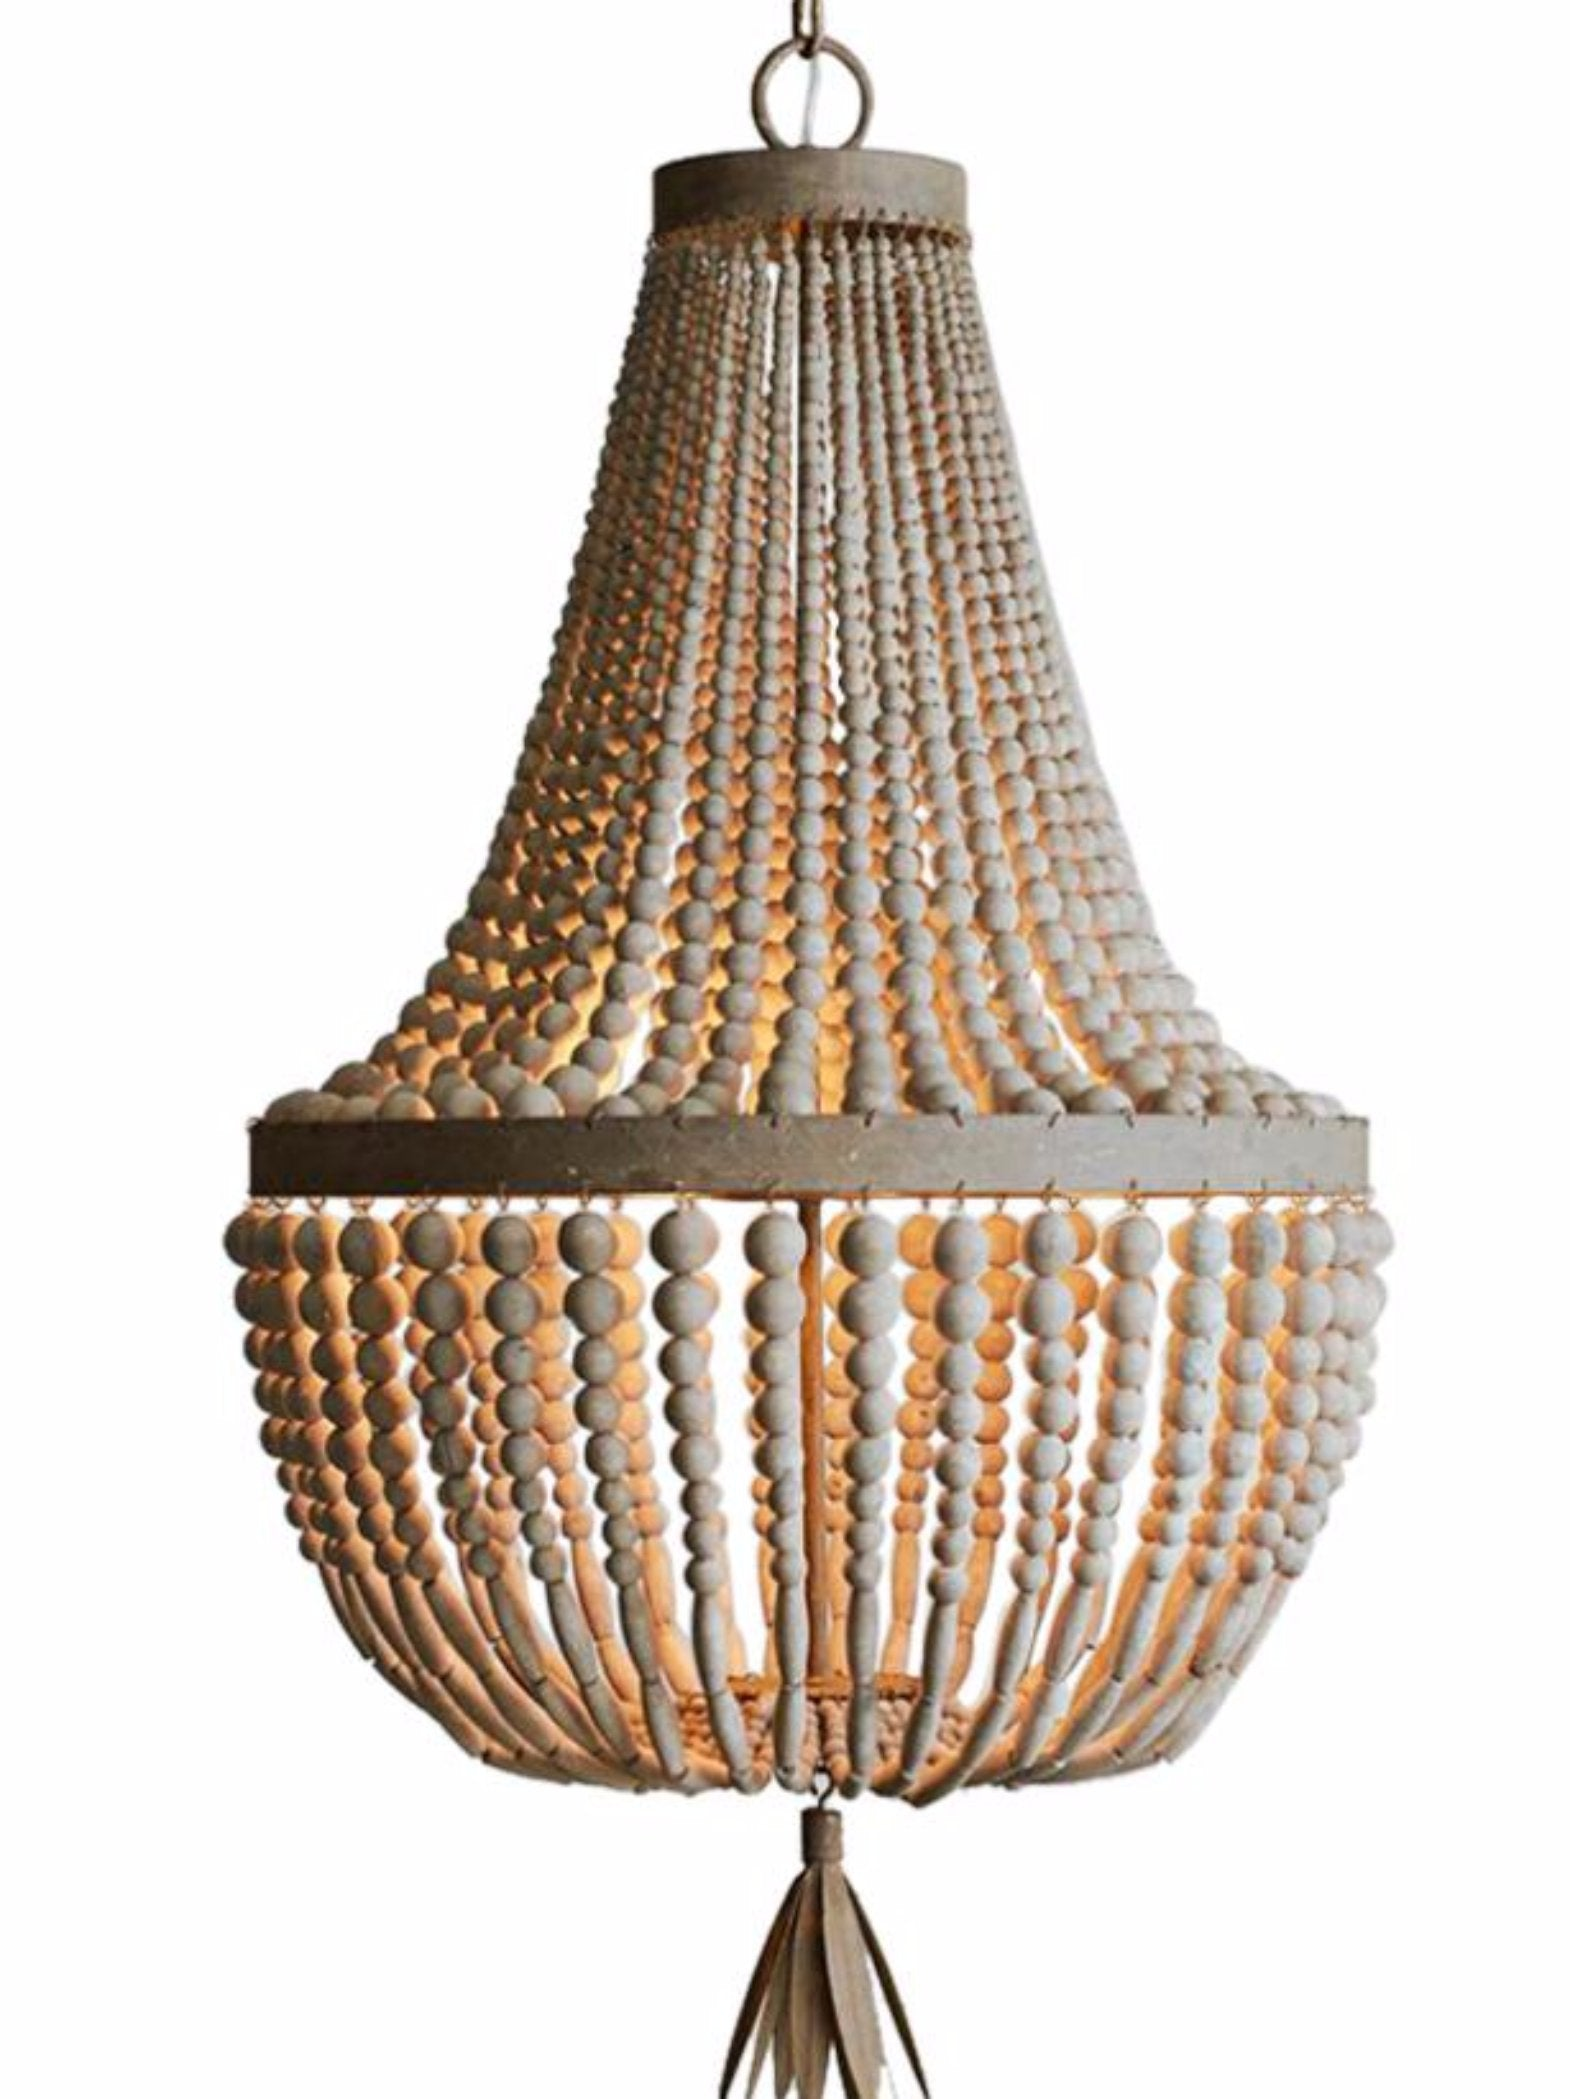 Kay primitive wooden beaded empire chandelier au courant interiors kay primitive wooden beaded empire chandelier au courant interiors aloadofball Image collections